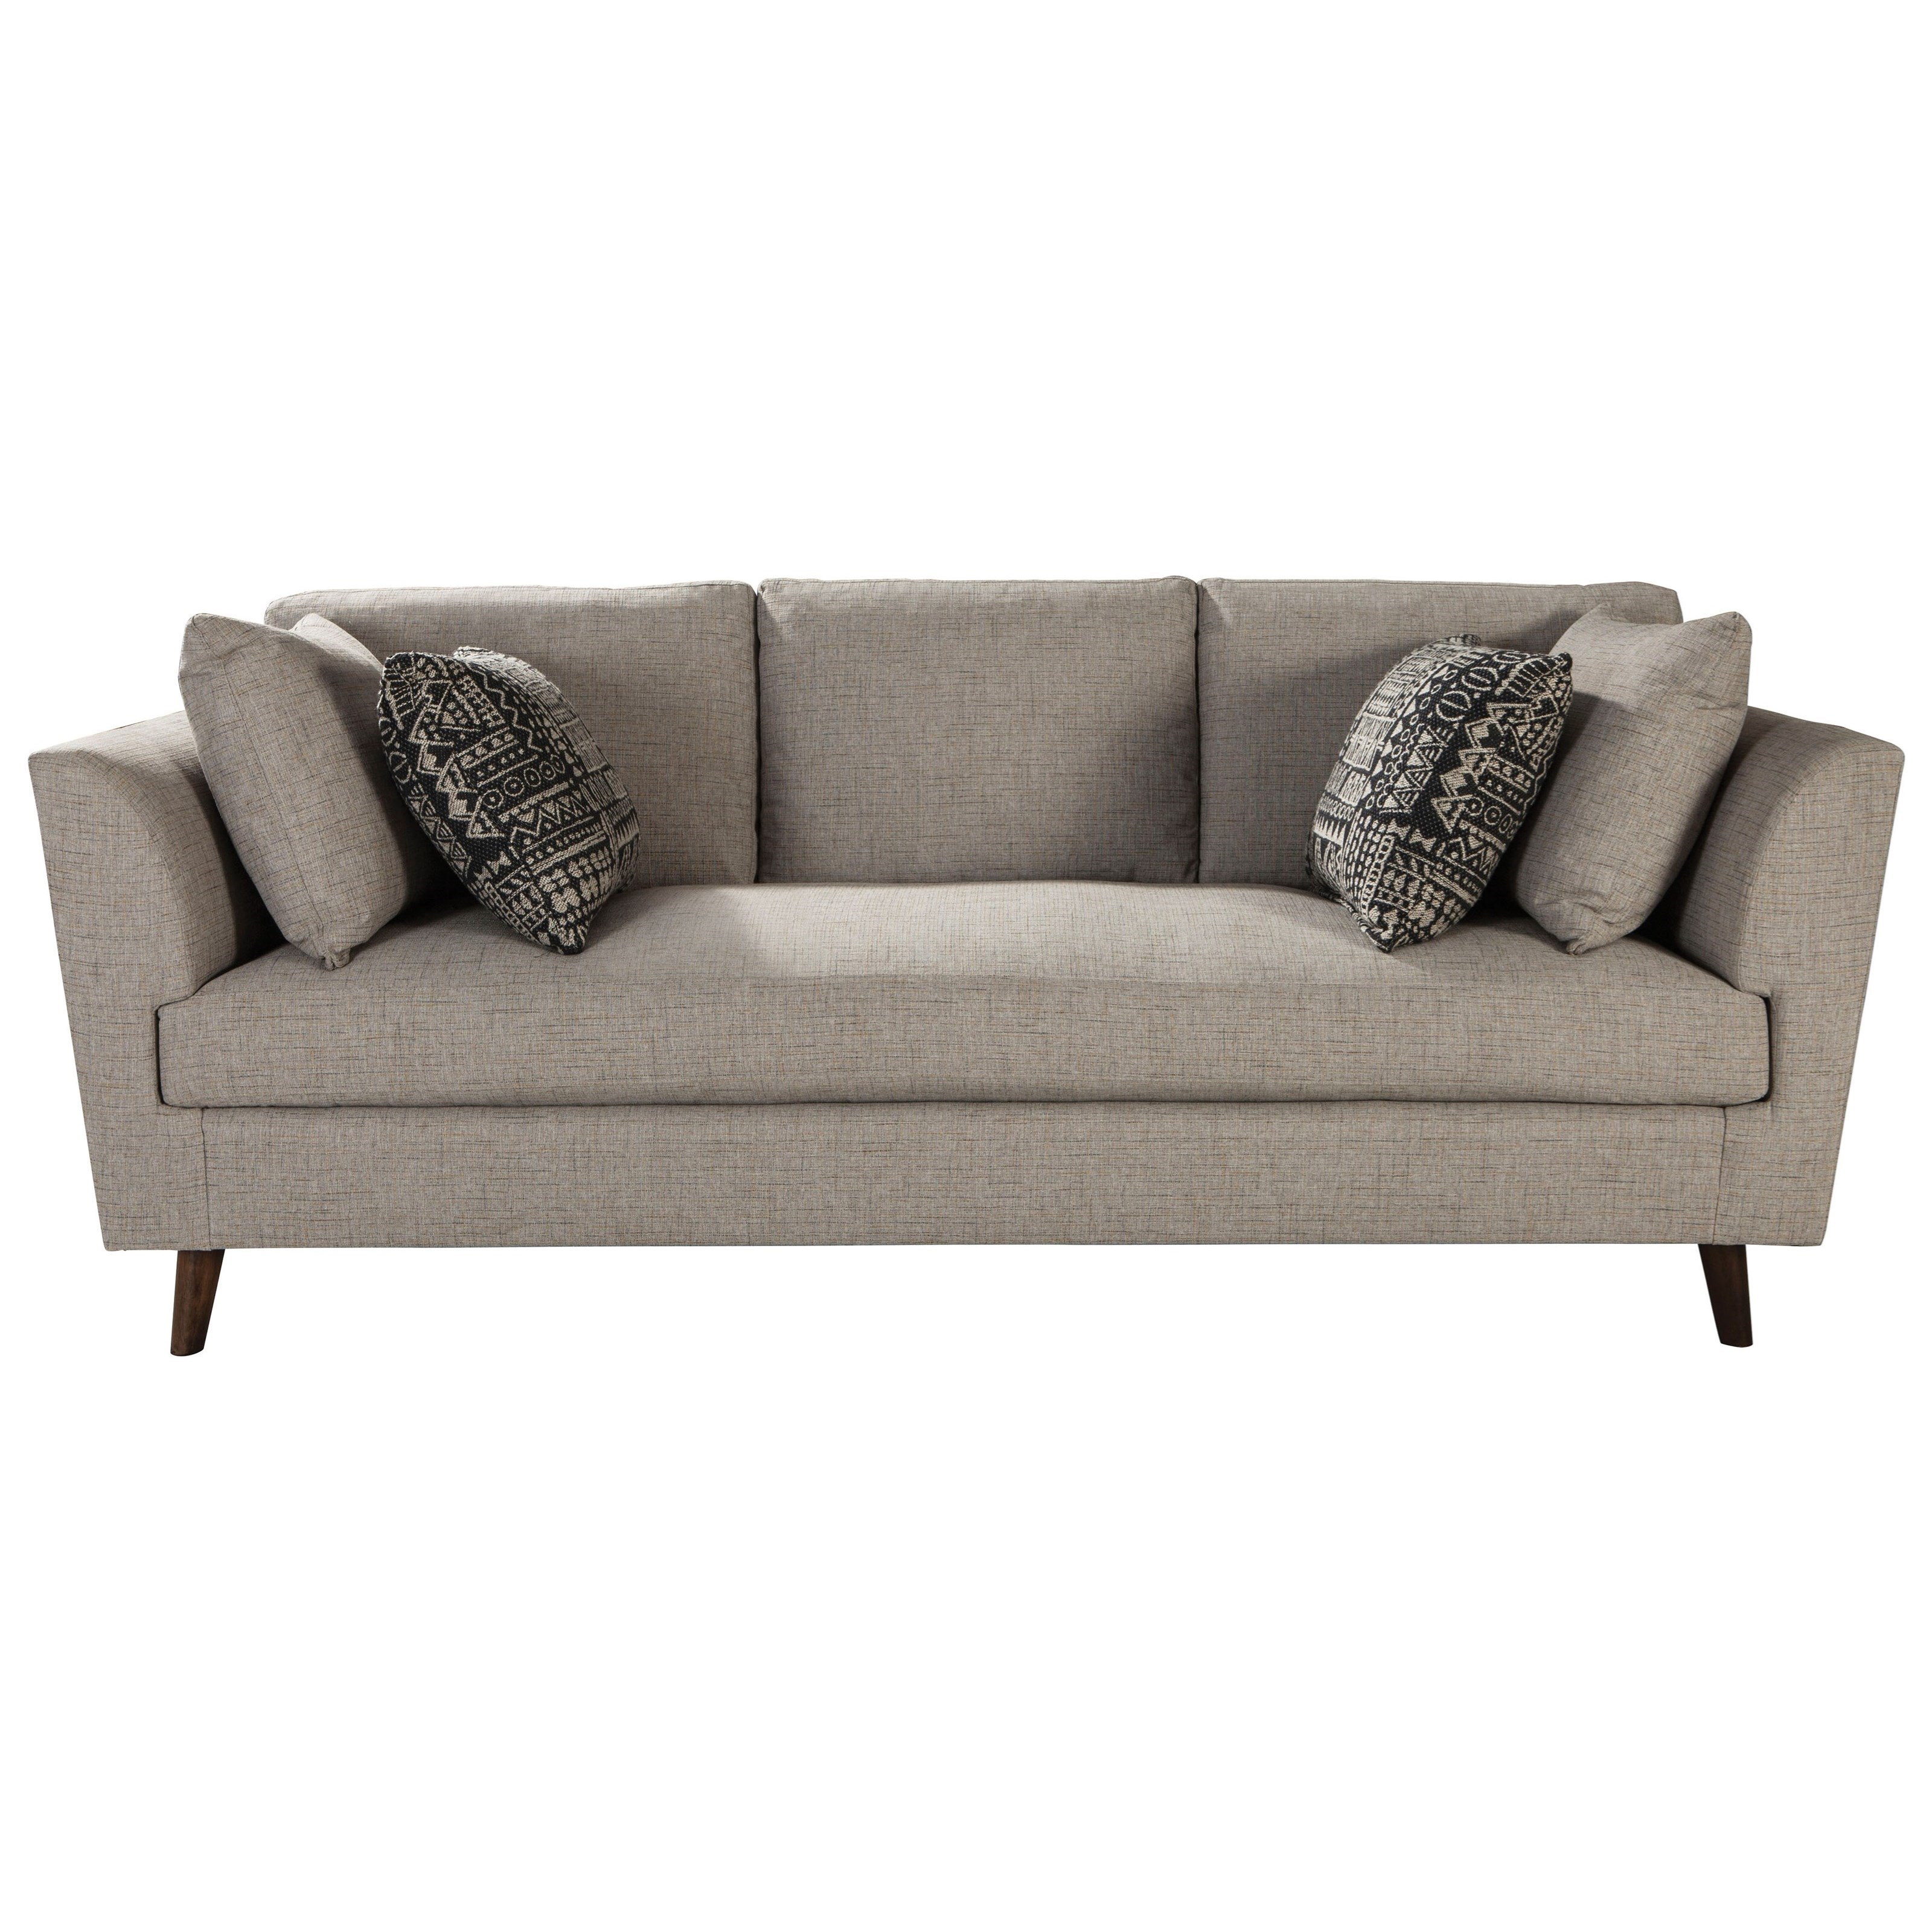 ED Ellen DeGeneres Crafted by Thomasville   Holmby Sofa - Item Number: 2664-11-1004-08